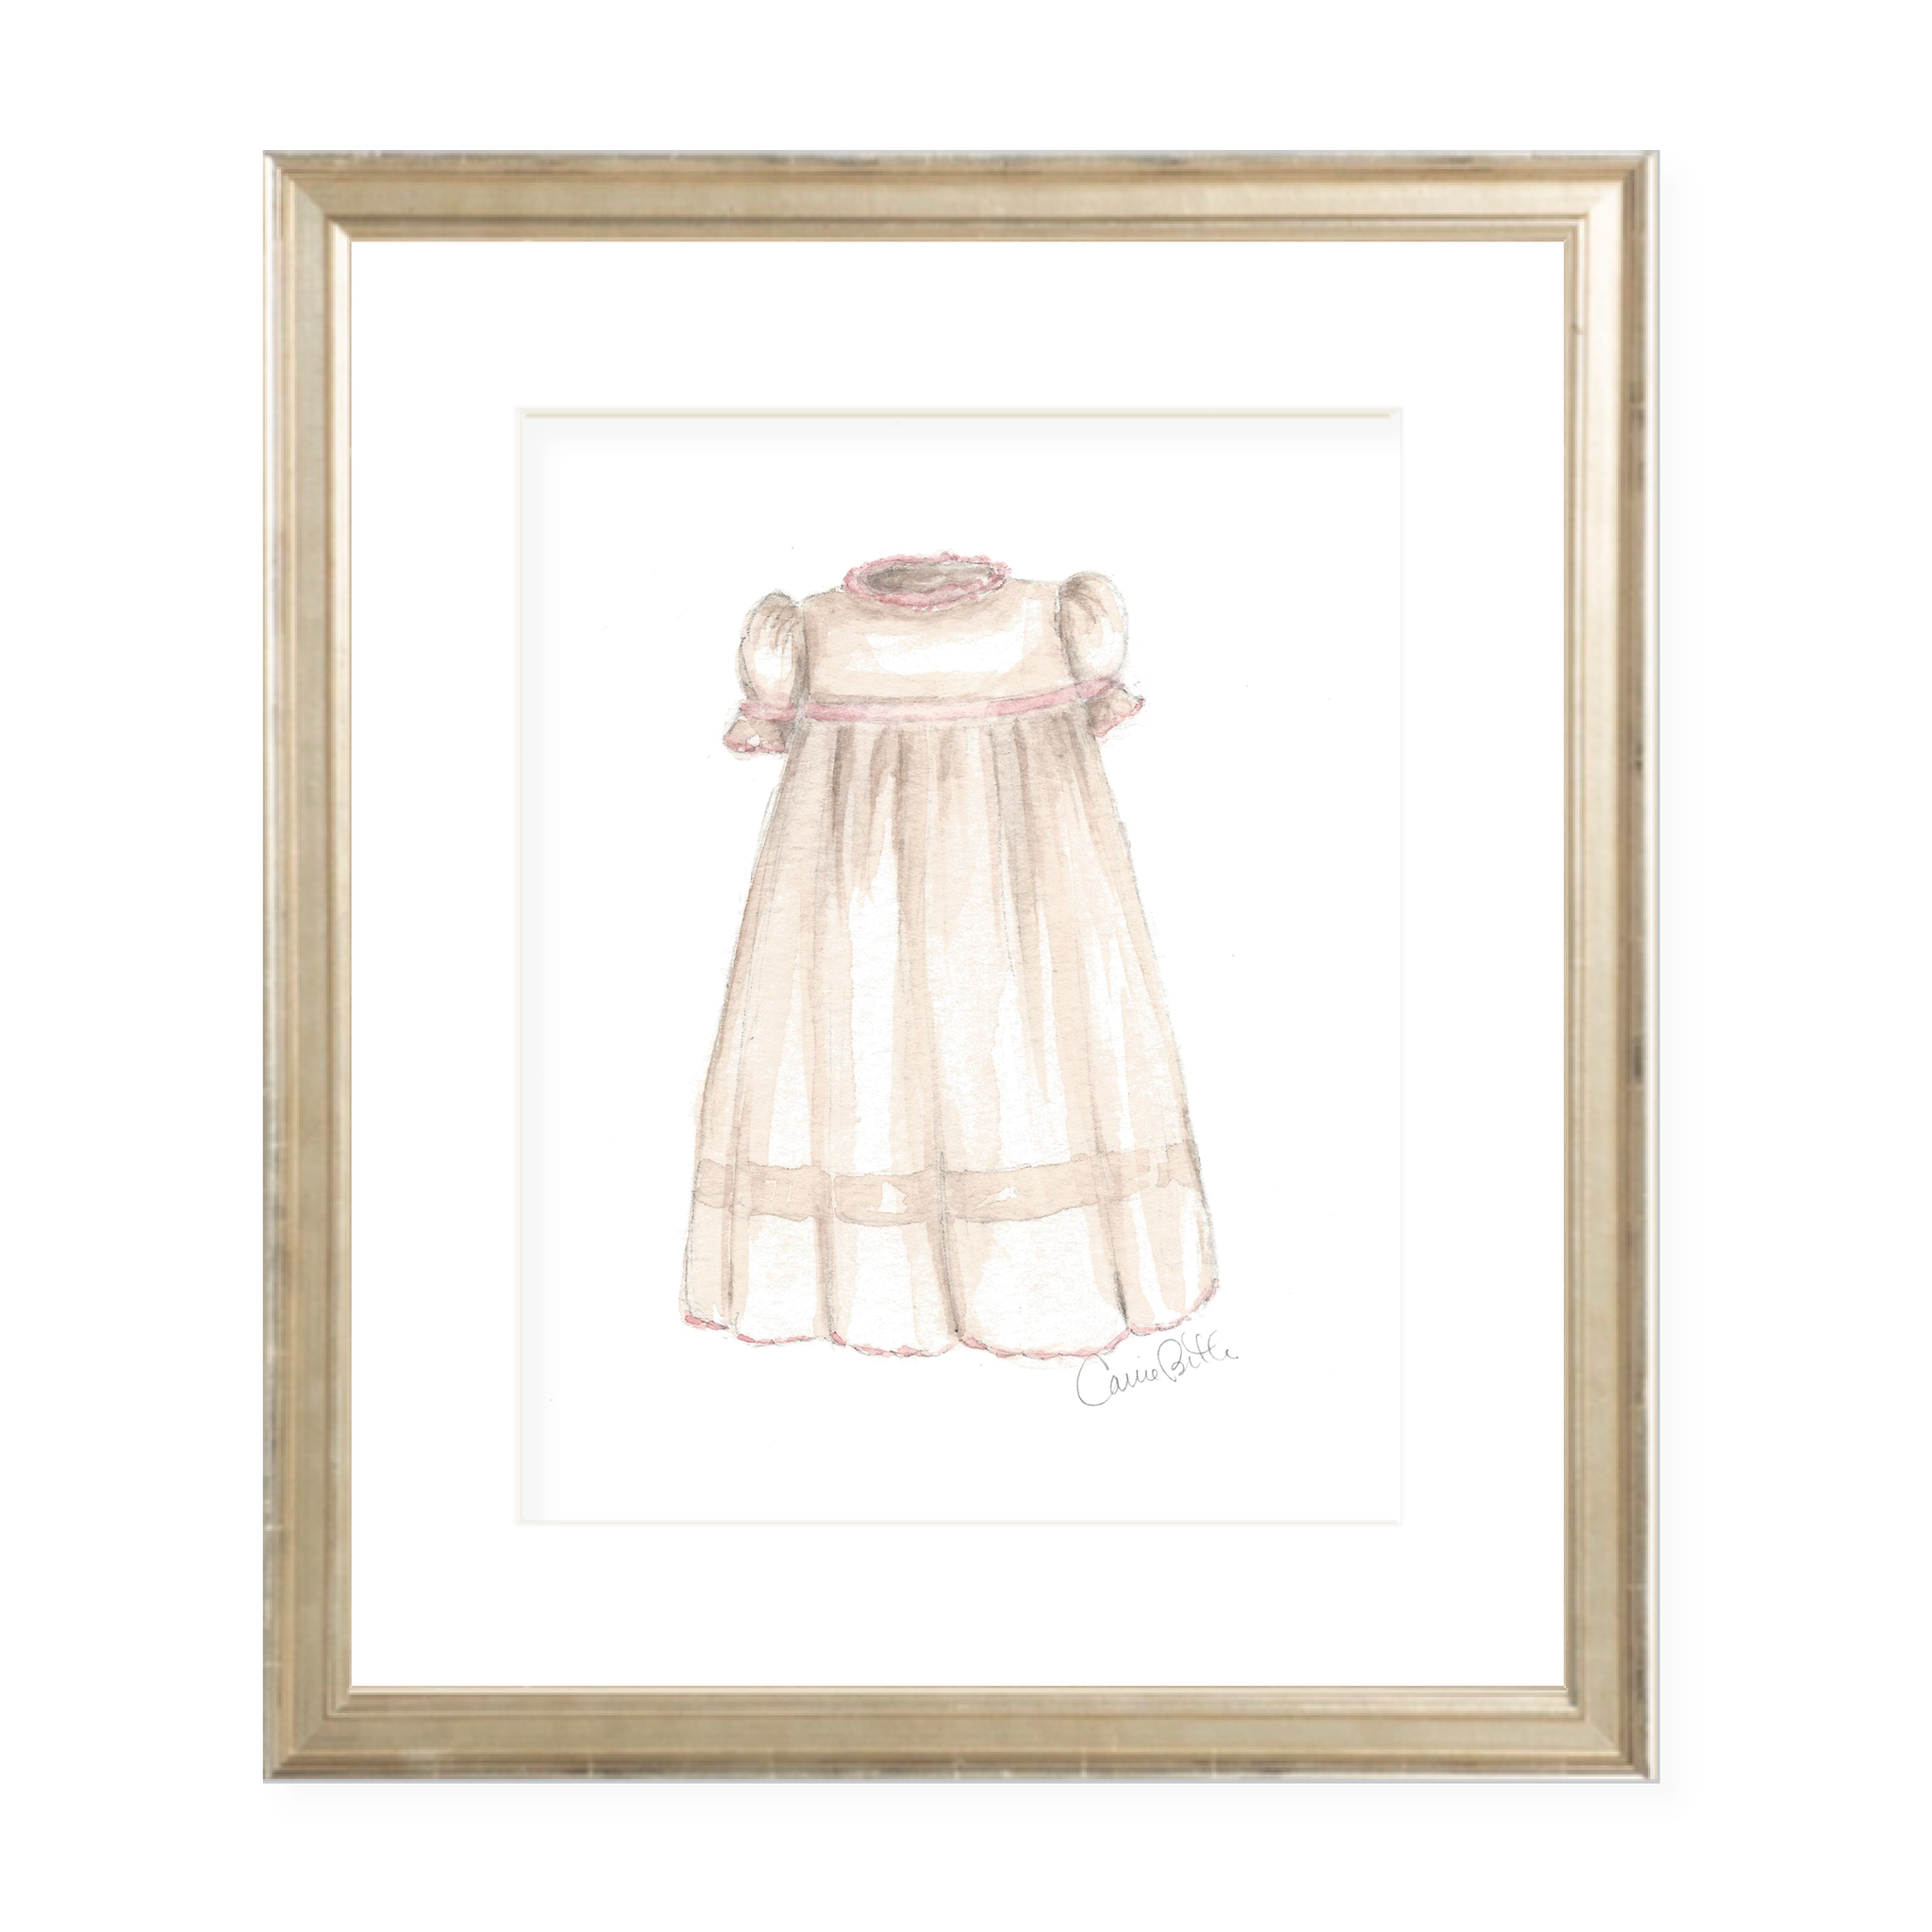 Frances Hereford Dress in Pink Watercolor Print